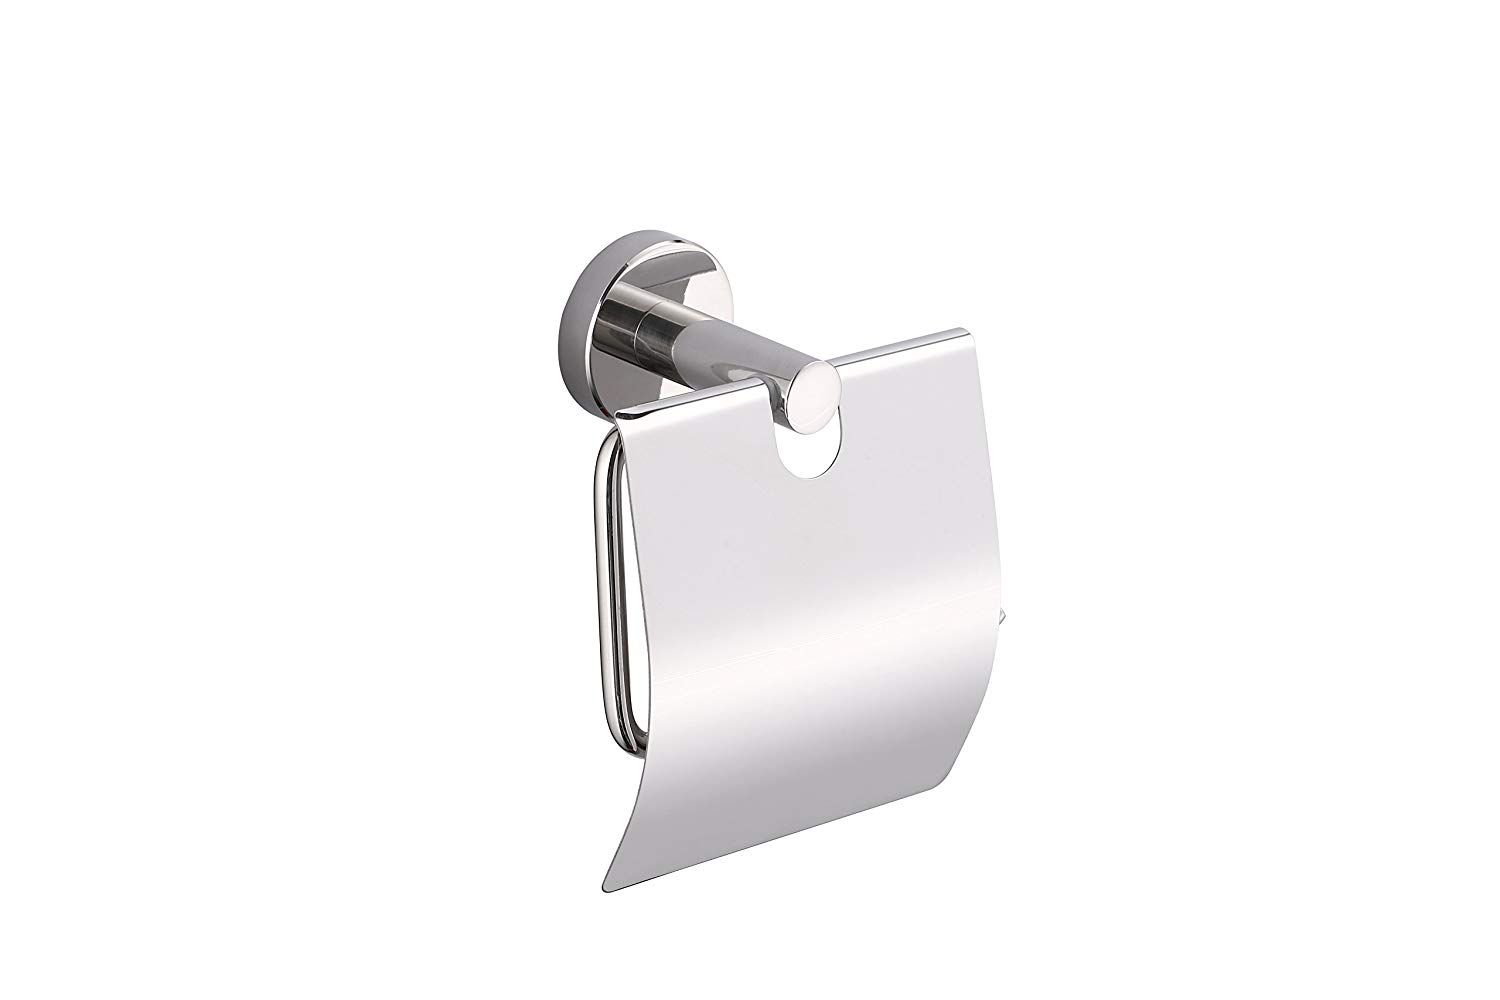 KTY Stainless Steel Toilet Paper Holder Single Roll with Cover, Polished SUS304 Stainless Steel